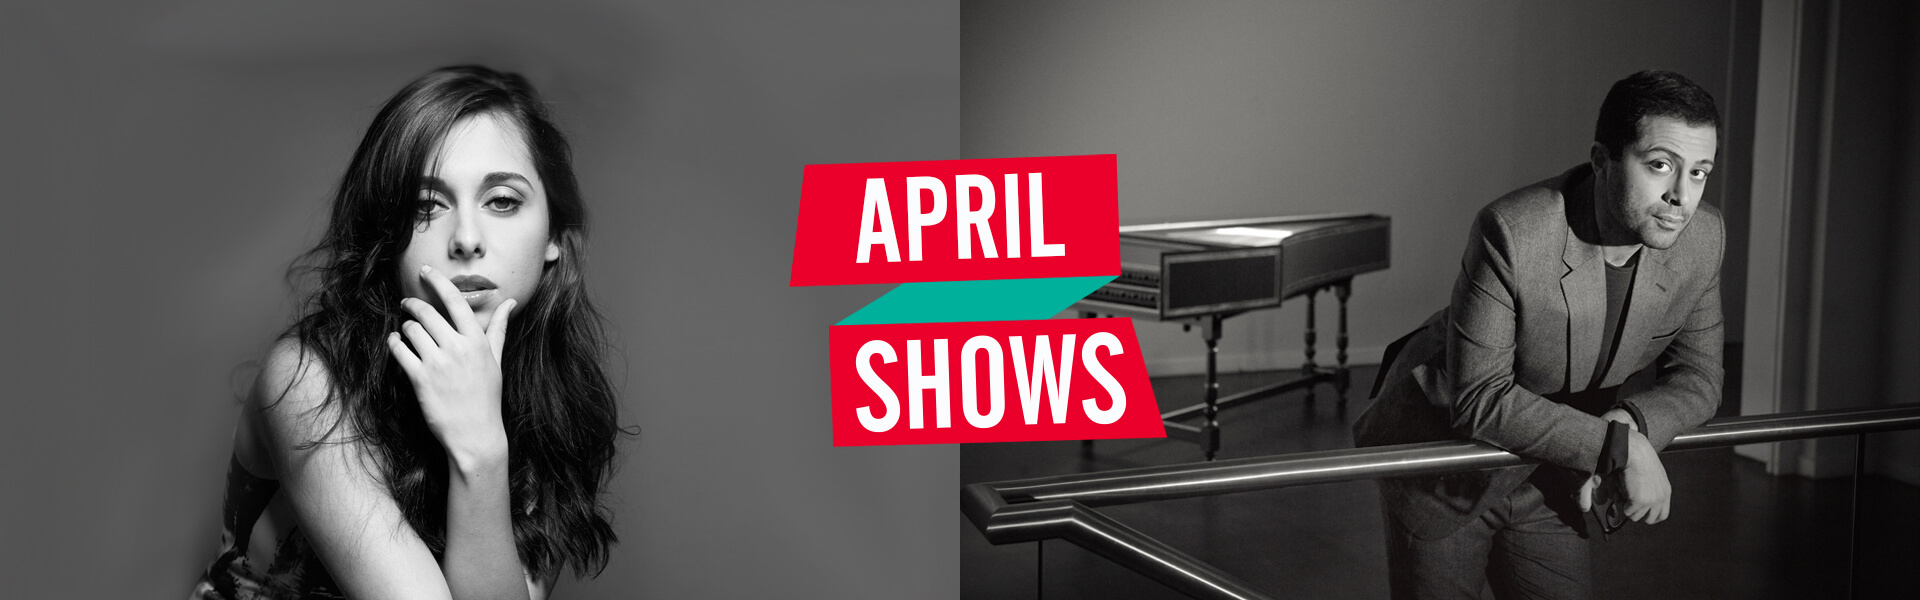 April Shows 2019